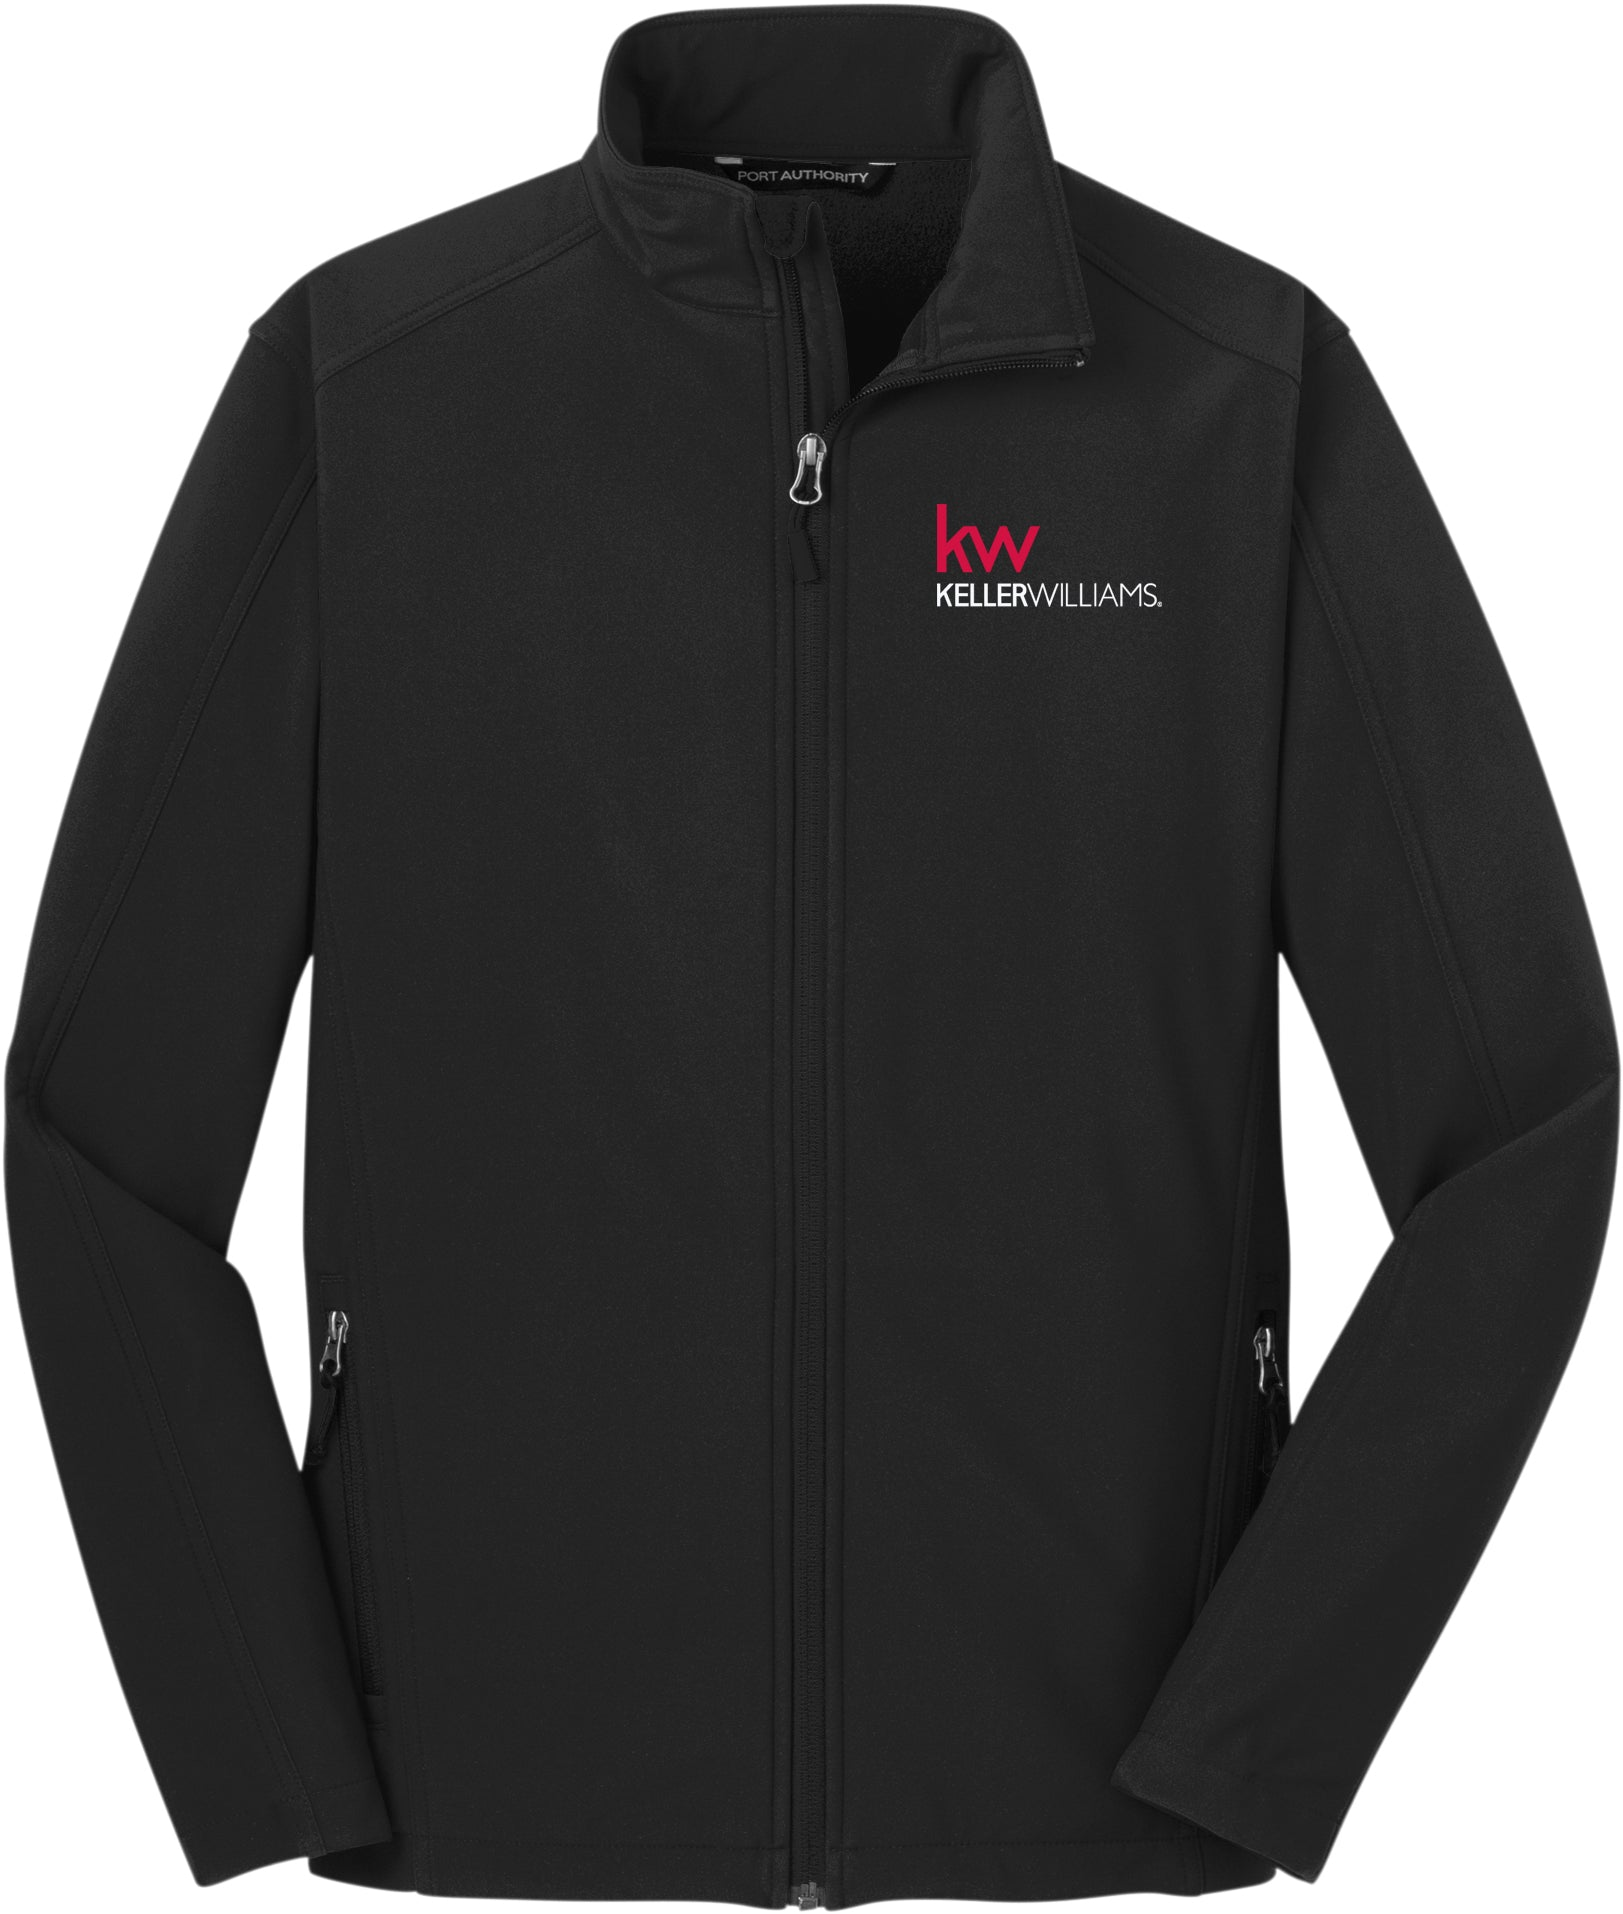 black full zip jacket with Keller Williams logo in red and white